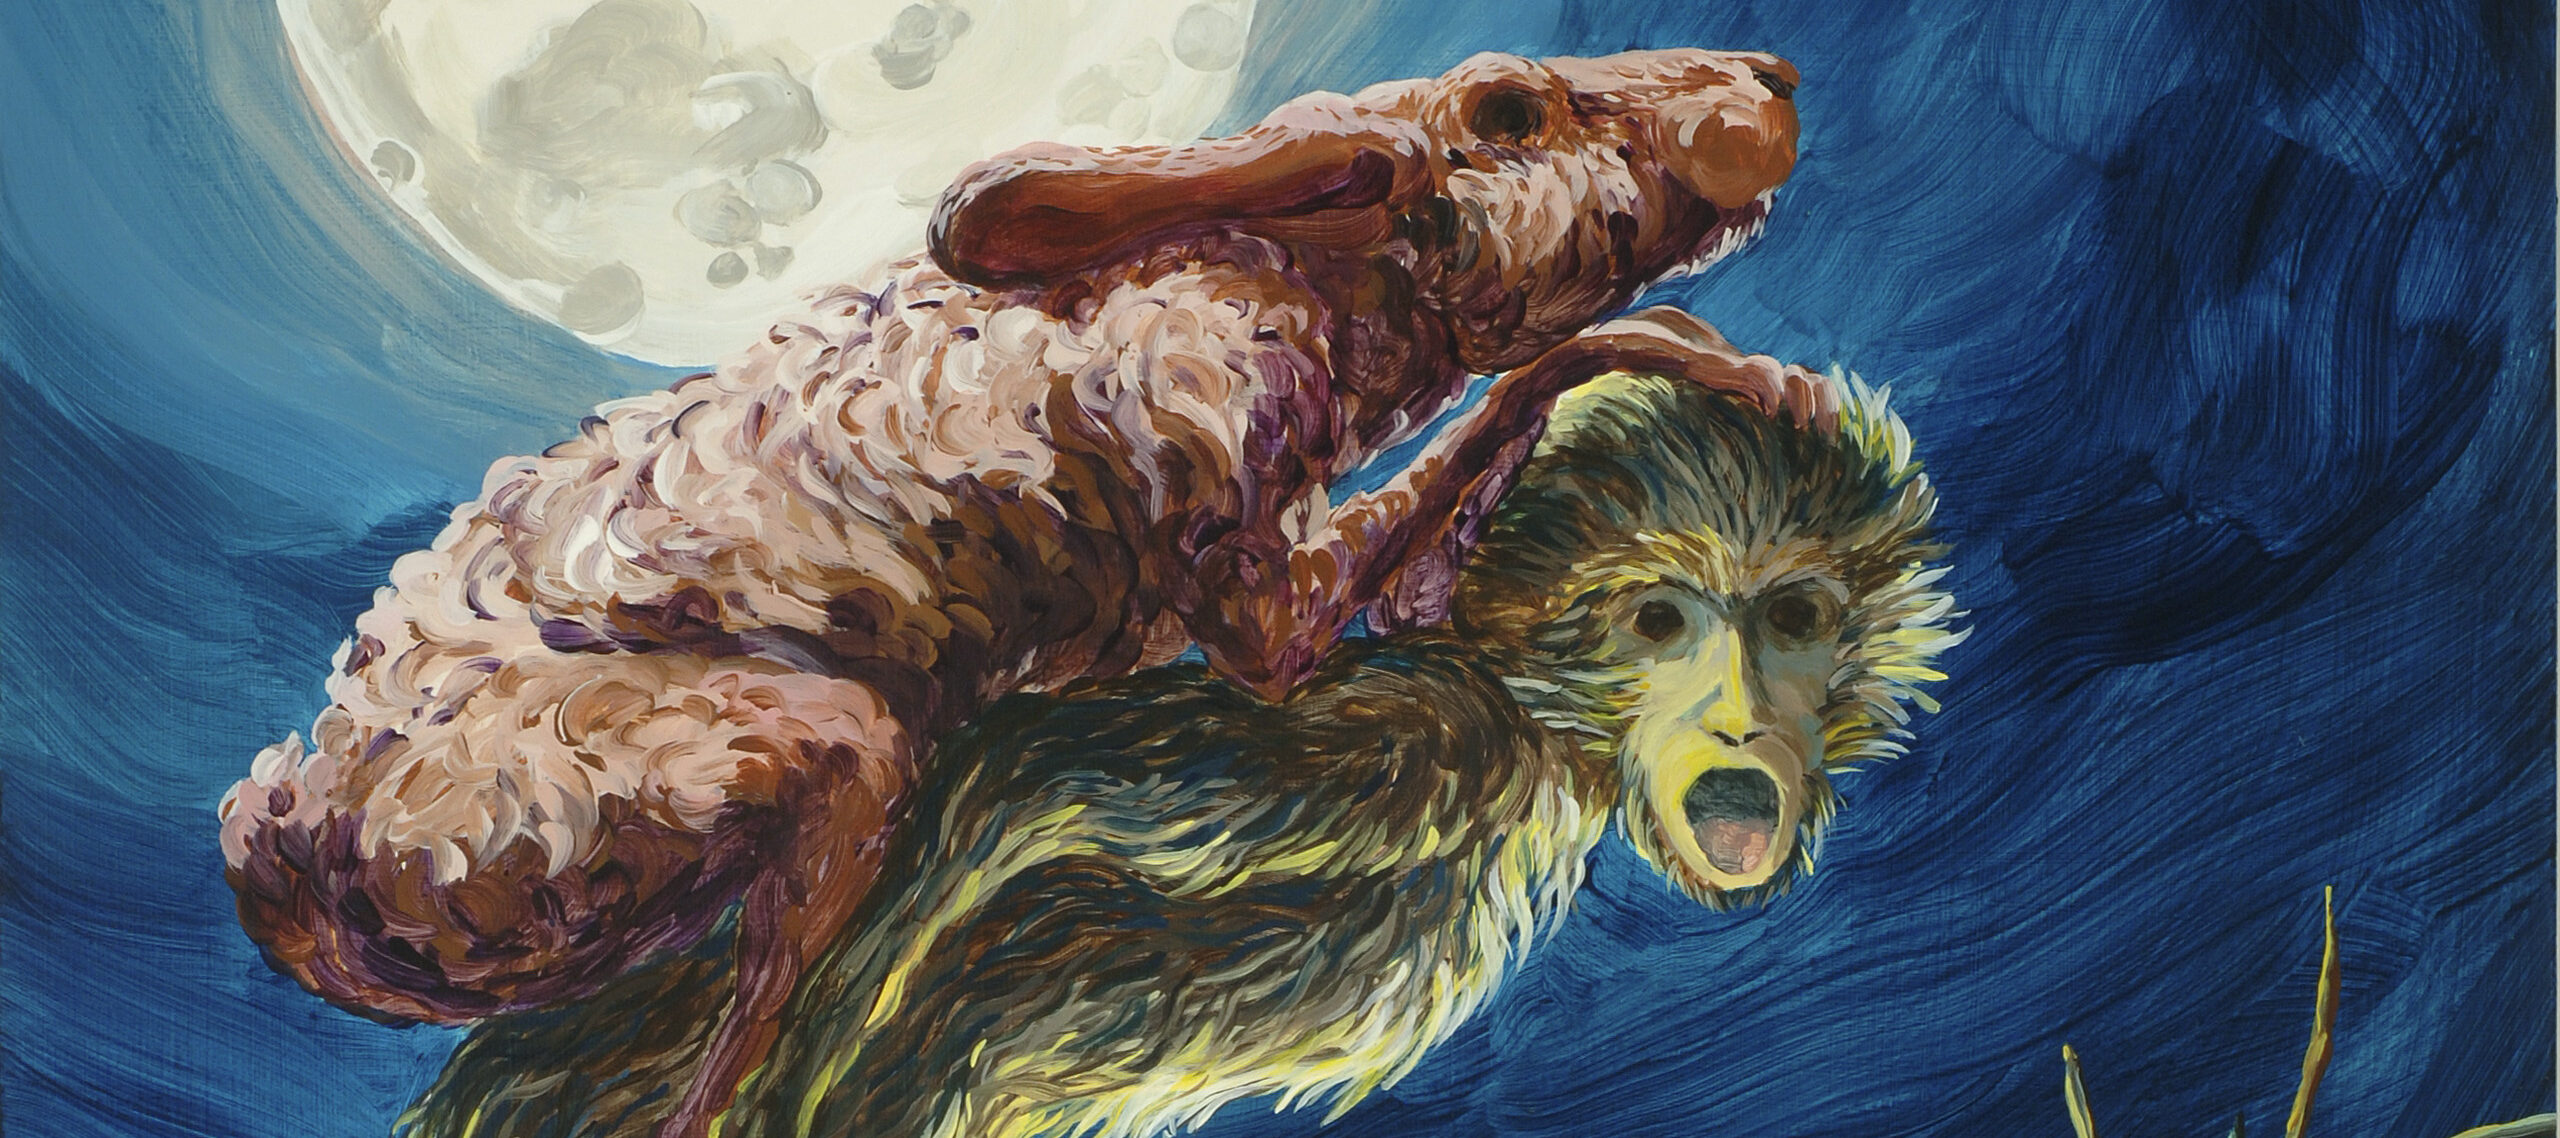 A spindly, brown, shaggy monkey facing right and climbing up a rocky slope. Its head is turned toward the viewer, showing dark eyes and a gaping mouth. Piggybacking on the monkey is a scrawny, mottled rabbit. A bright, full moon looms over the duo in a navy sky.